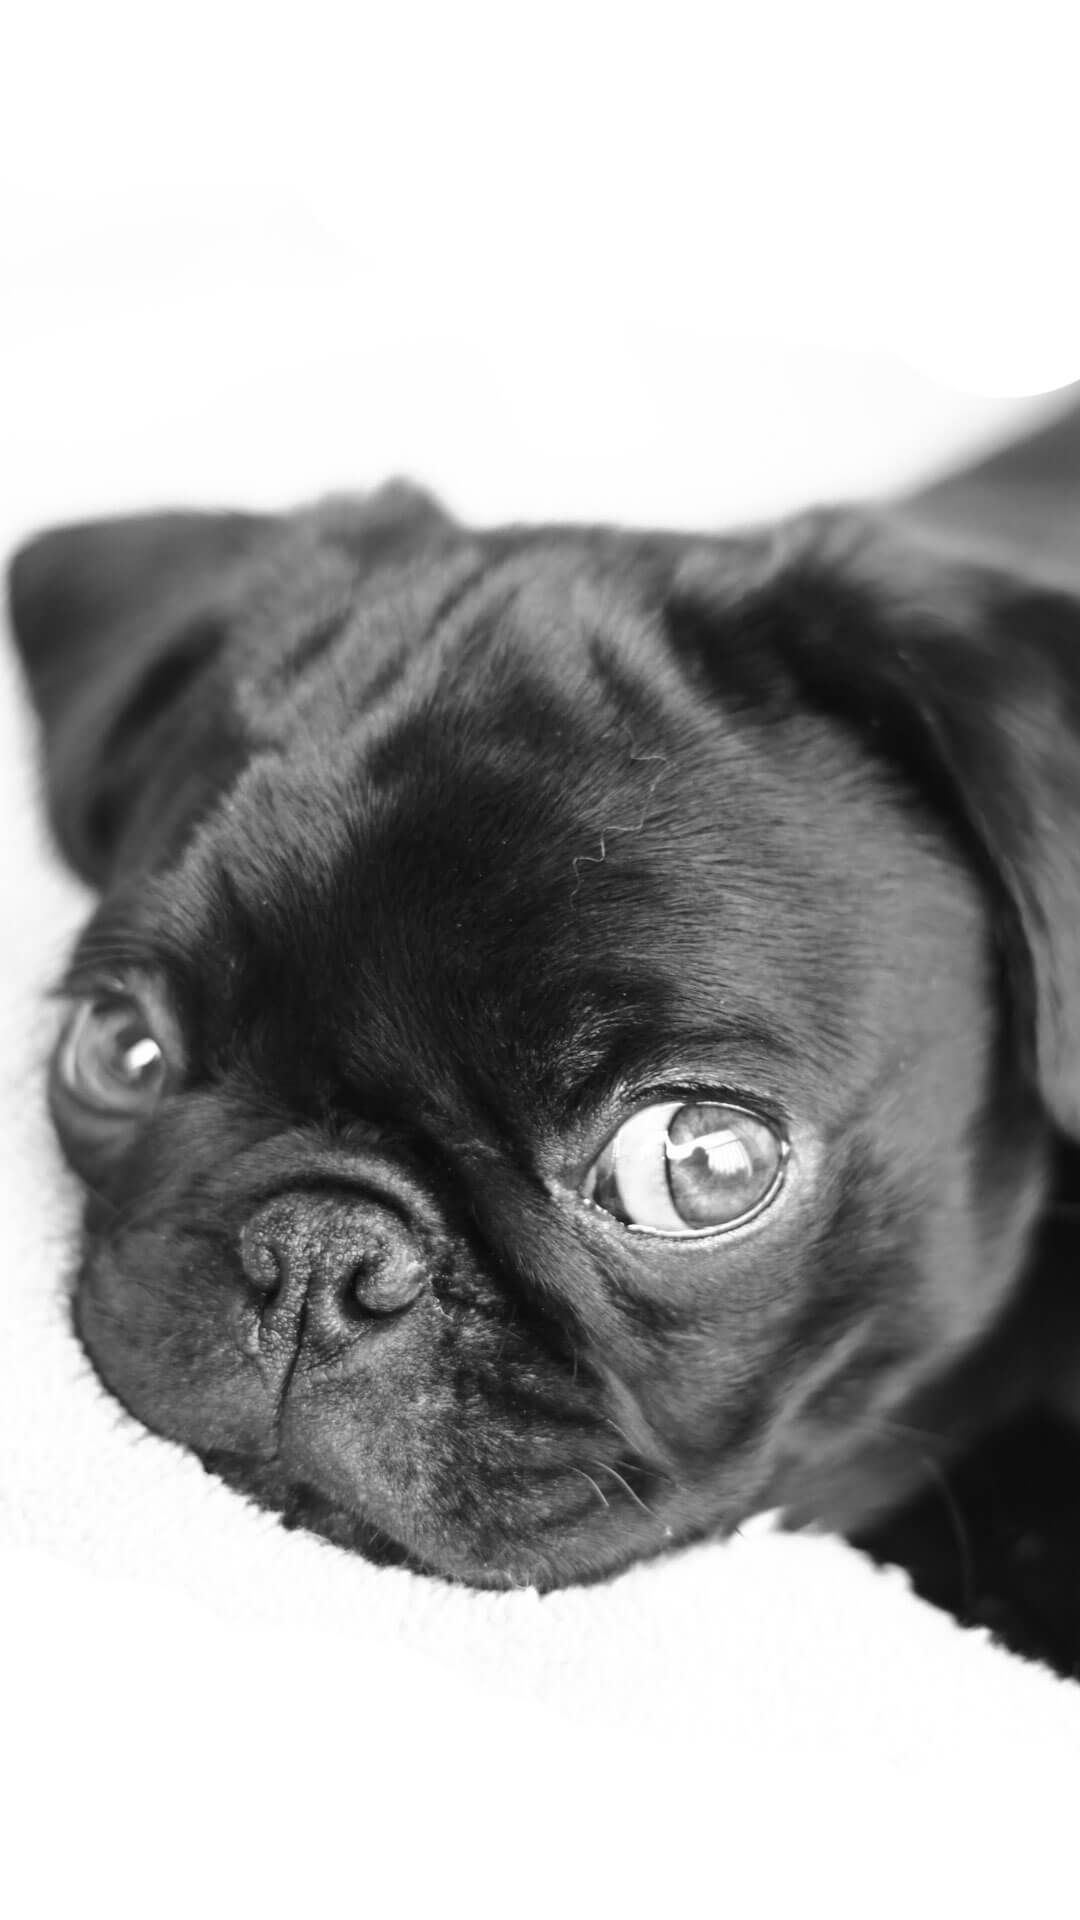 Cute Pugs Puppies iPhone 6 Wallpaper HD Animal Wallpaper